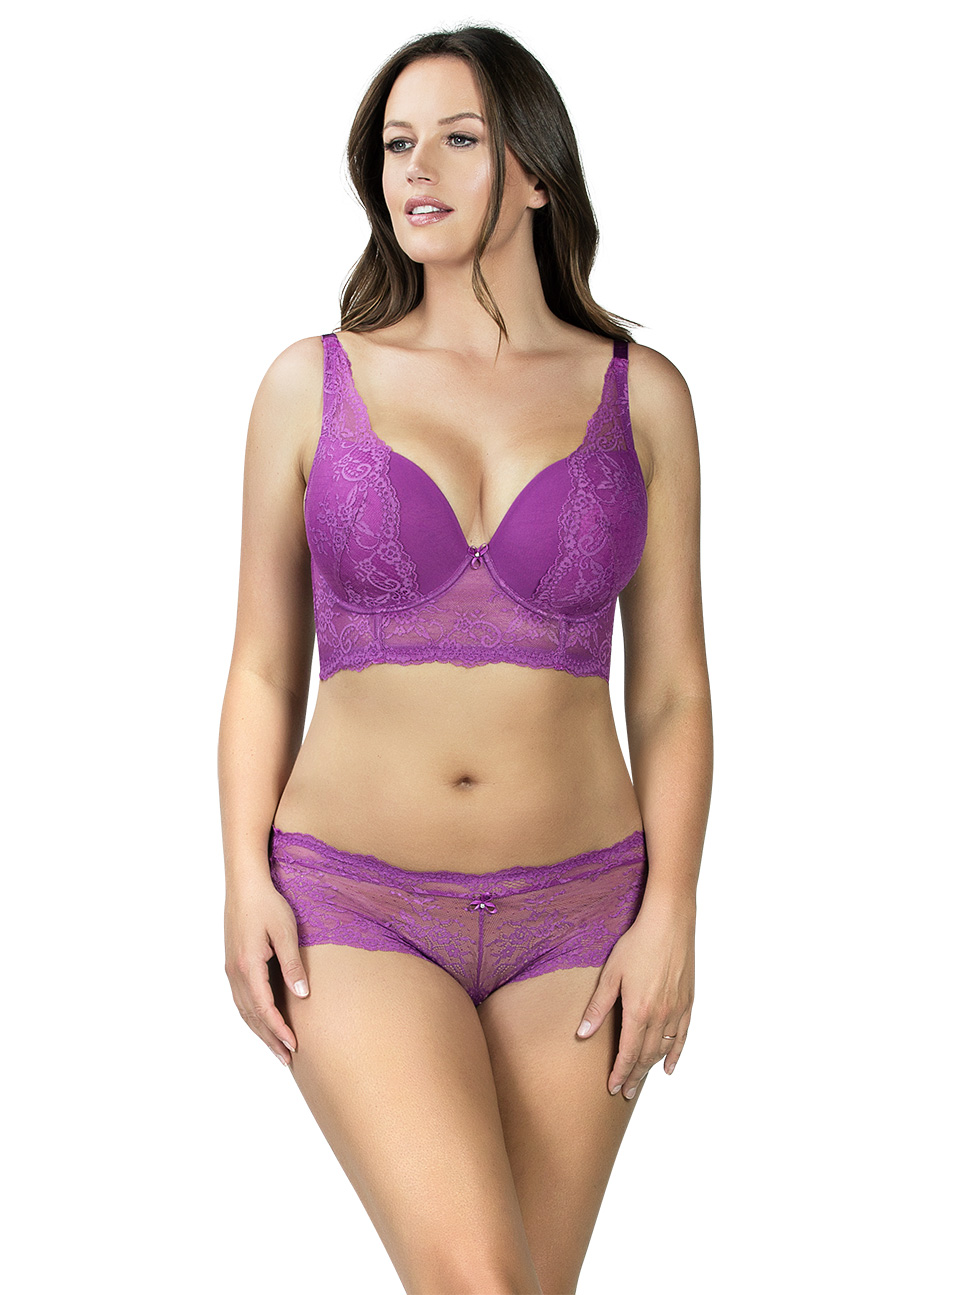 PARFAIT Sandrine PlungeLonglineBraP5351 HipsterP5355 Orchid Front - Sandrine Hipster Orchid P5355